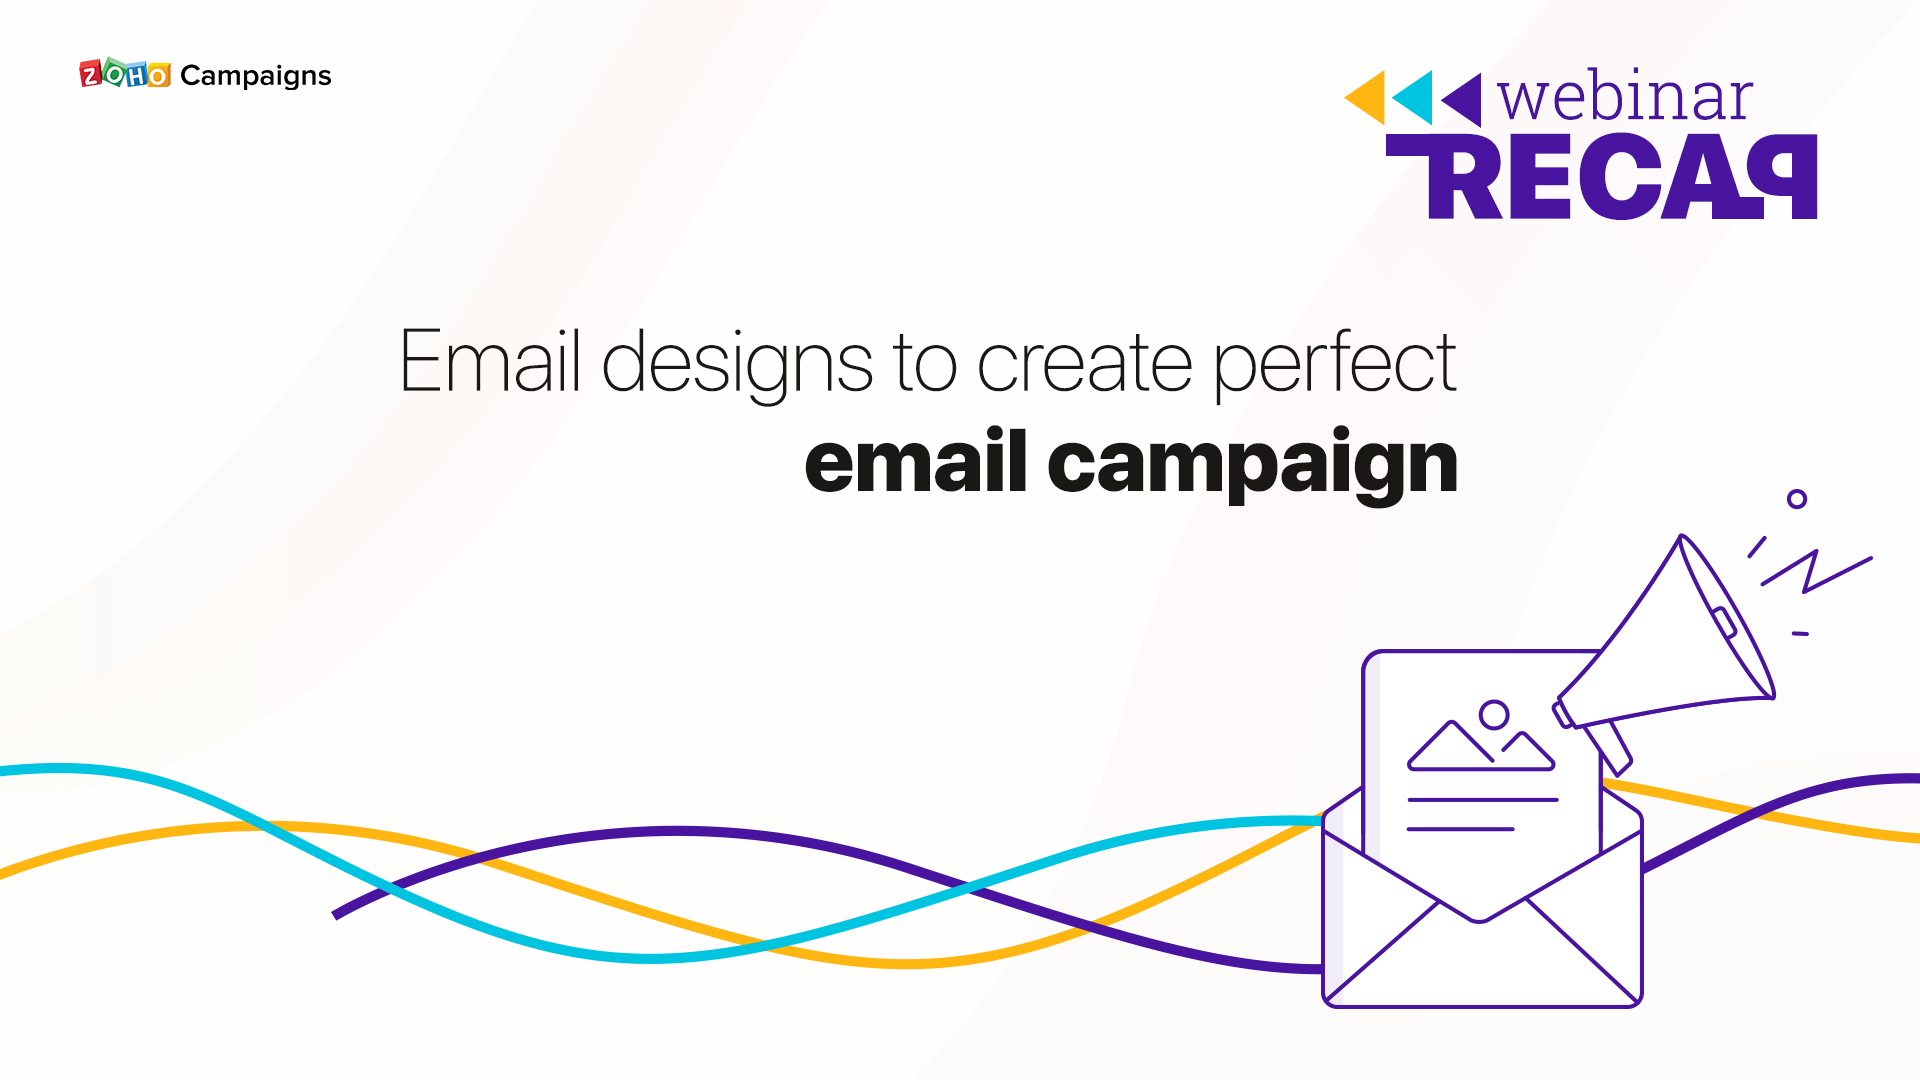 Webinar recap: Email designs to create perfect email campaign